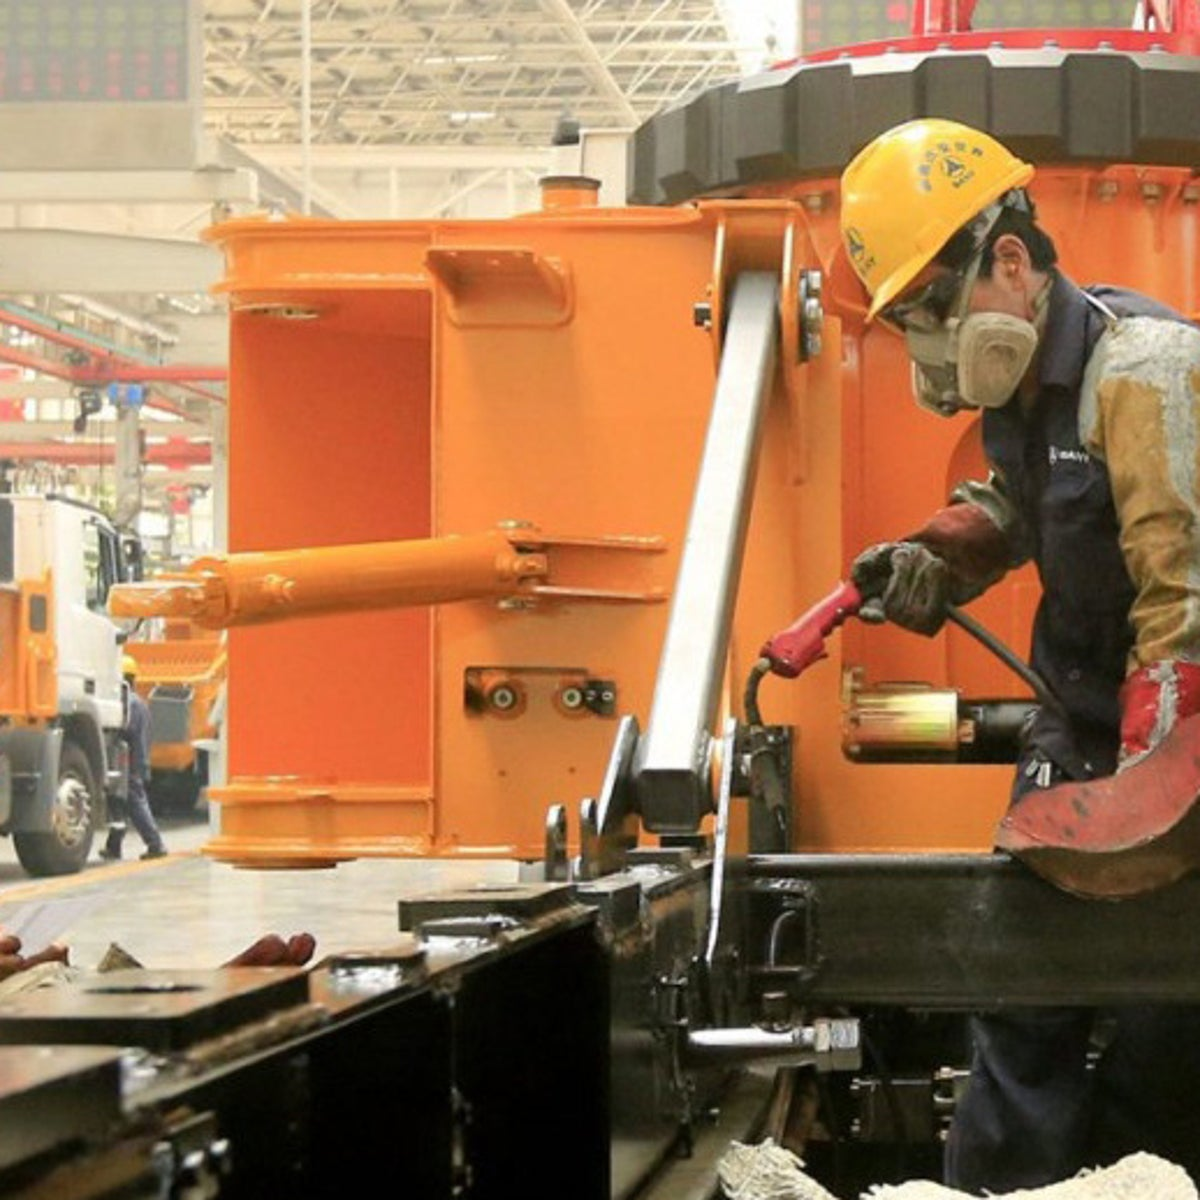 Employees work on the manufacture of construction machinery in Sany Heavy Industry Co.'s assembly shop in Changsha, Hunan Province, China, on Thursday, July 12, 2012. Sany Heavy Industry, Chinas biggest maker of excavators, lowered annual unit-sales forecast as slowing economic growth and government's curbs on property market sap demand.